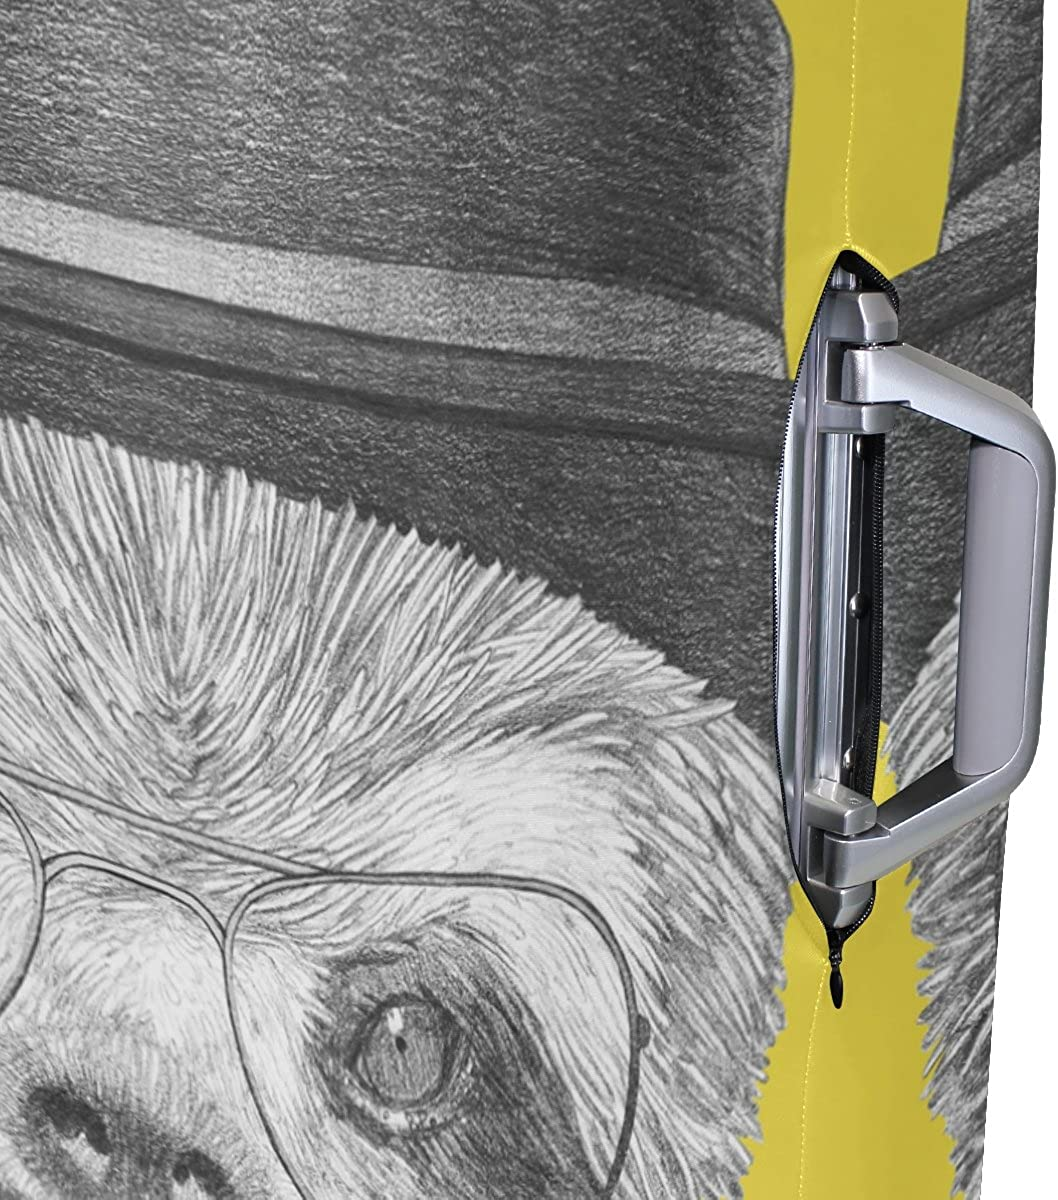 GIOVANIOR Portrait Of Sloth With Hat And Glasses Luggage Cover Suitcase Protector Carry On Covers